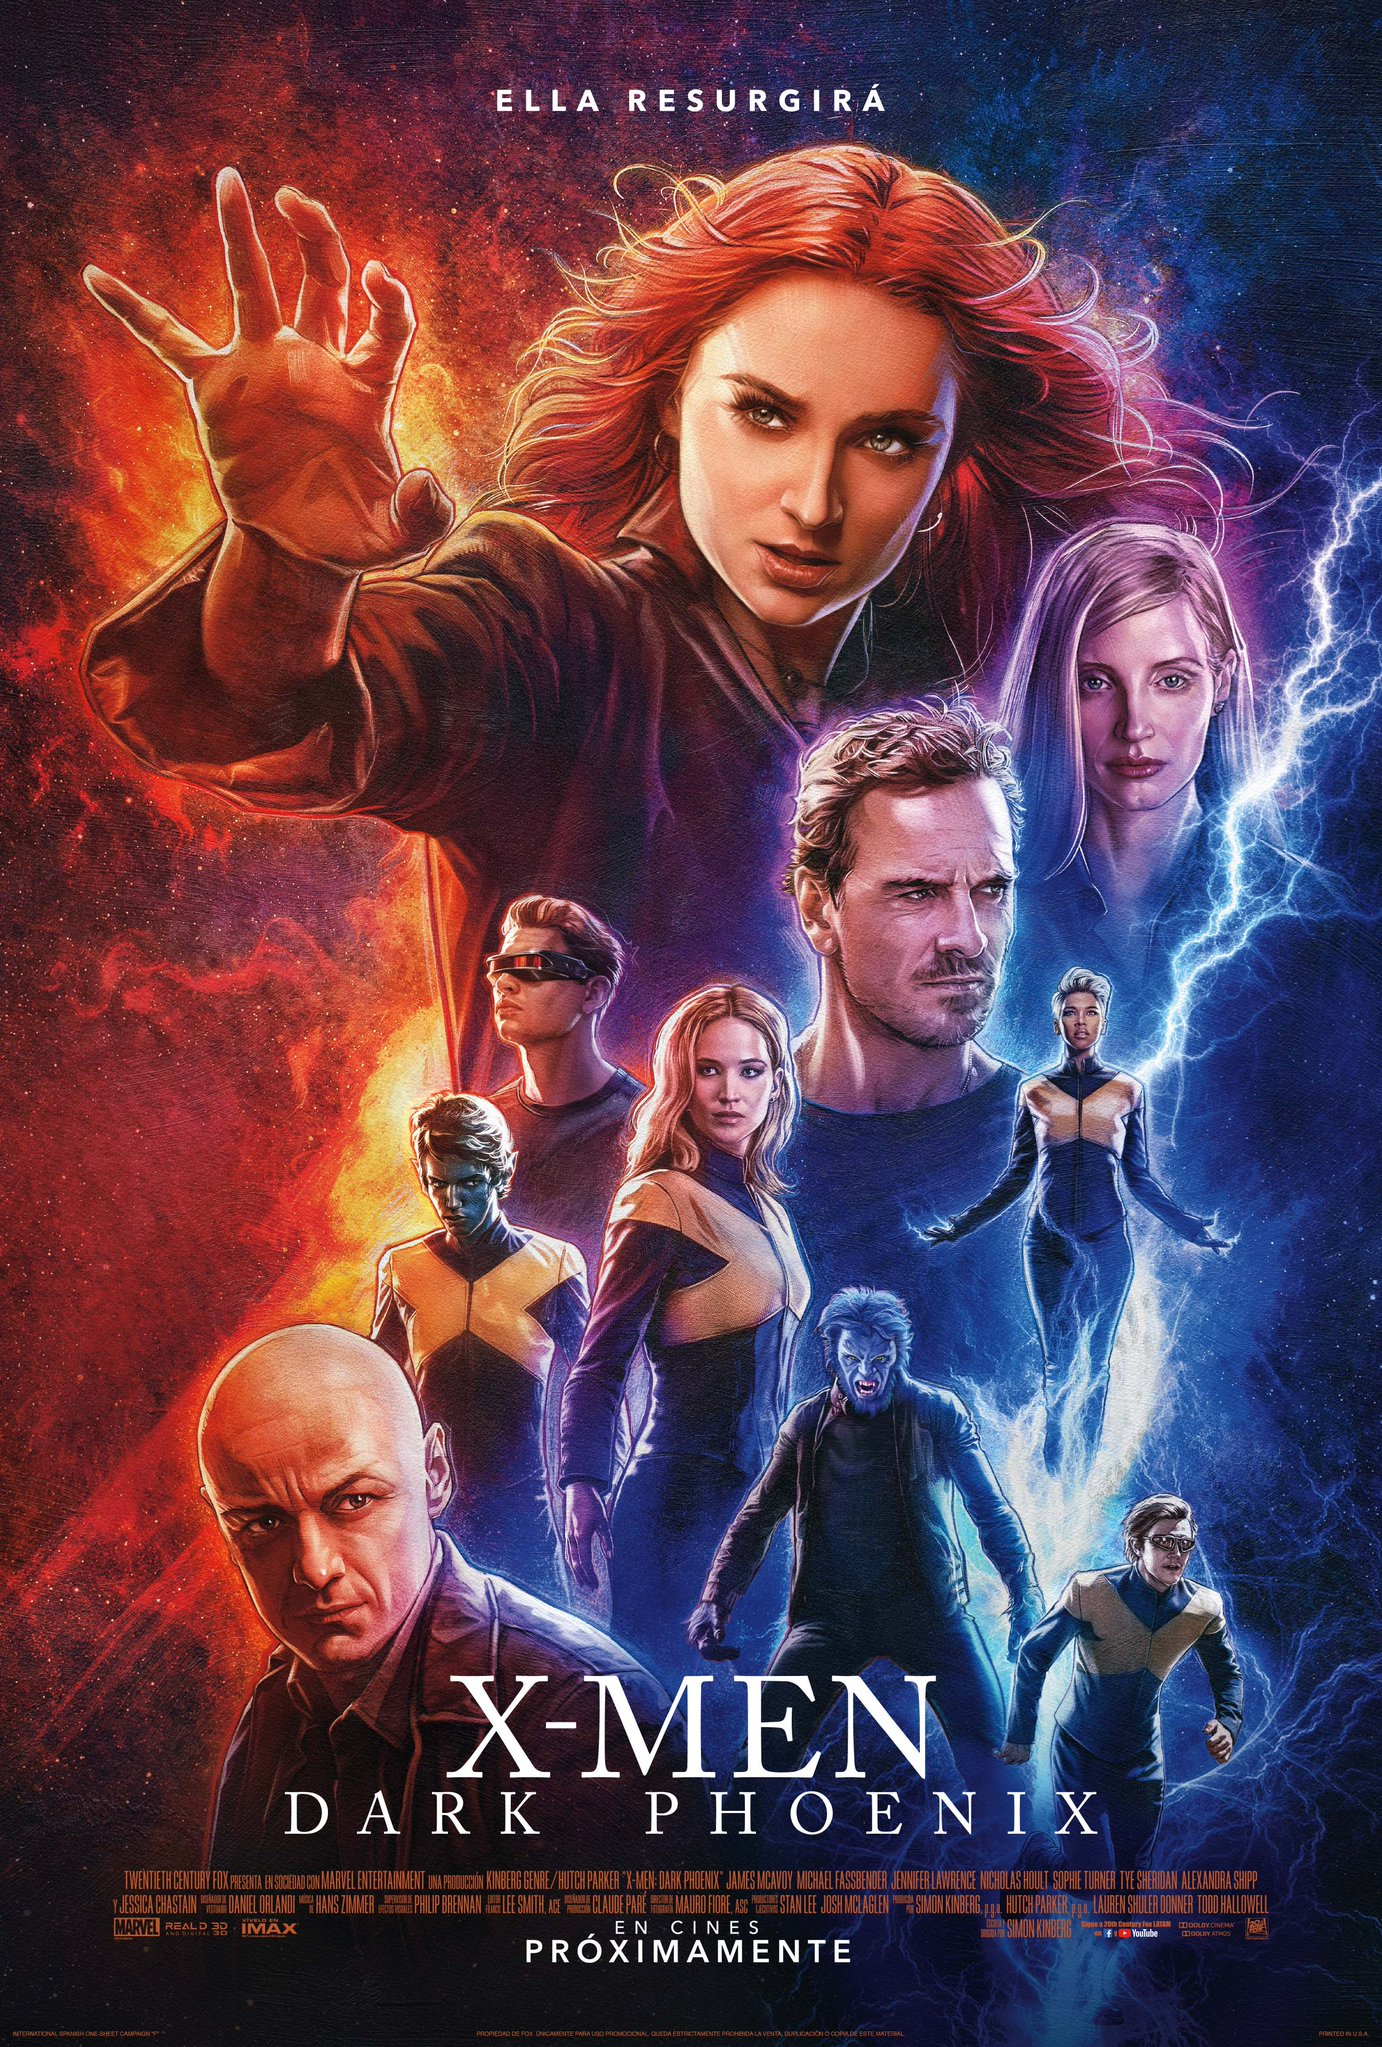 Xmen Dark phoenix no saldra en BluRay